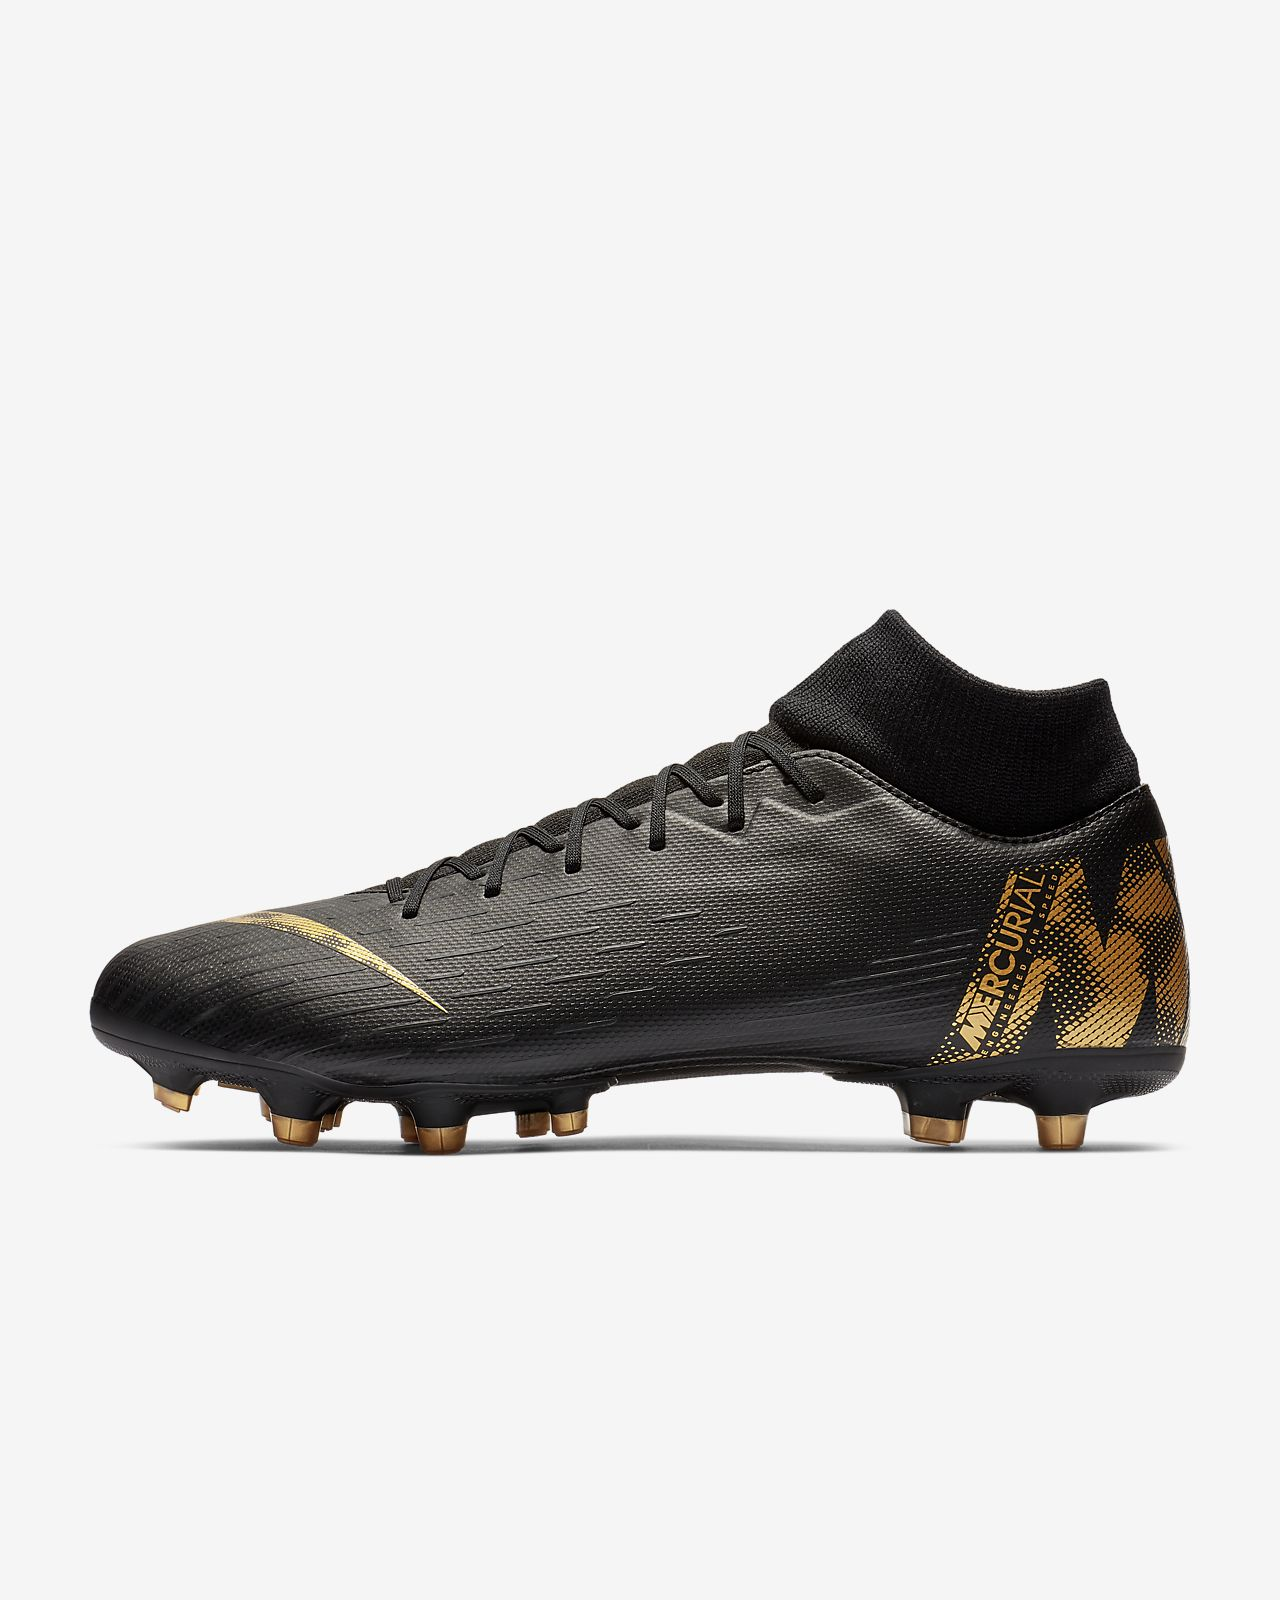 3c4cd0caa0a Nike Mercurial Superfly 6 Academy MG Multi-Ground Soccer Cleat. Nike.com